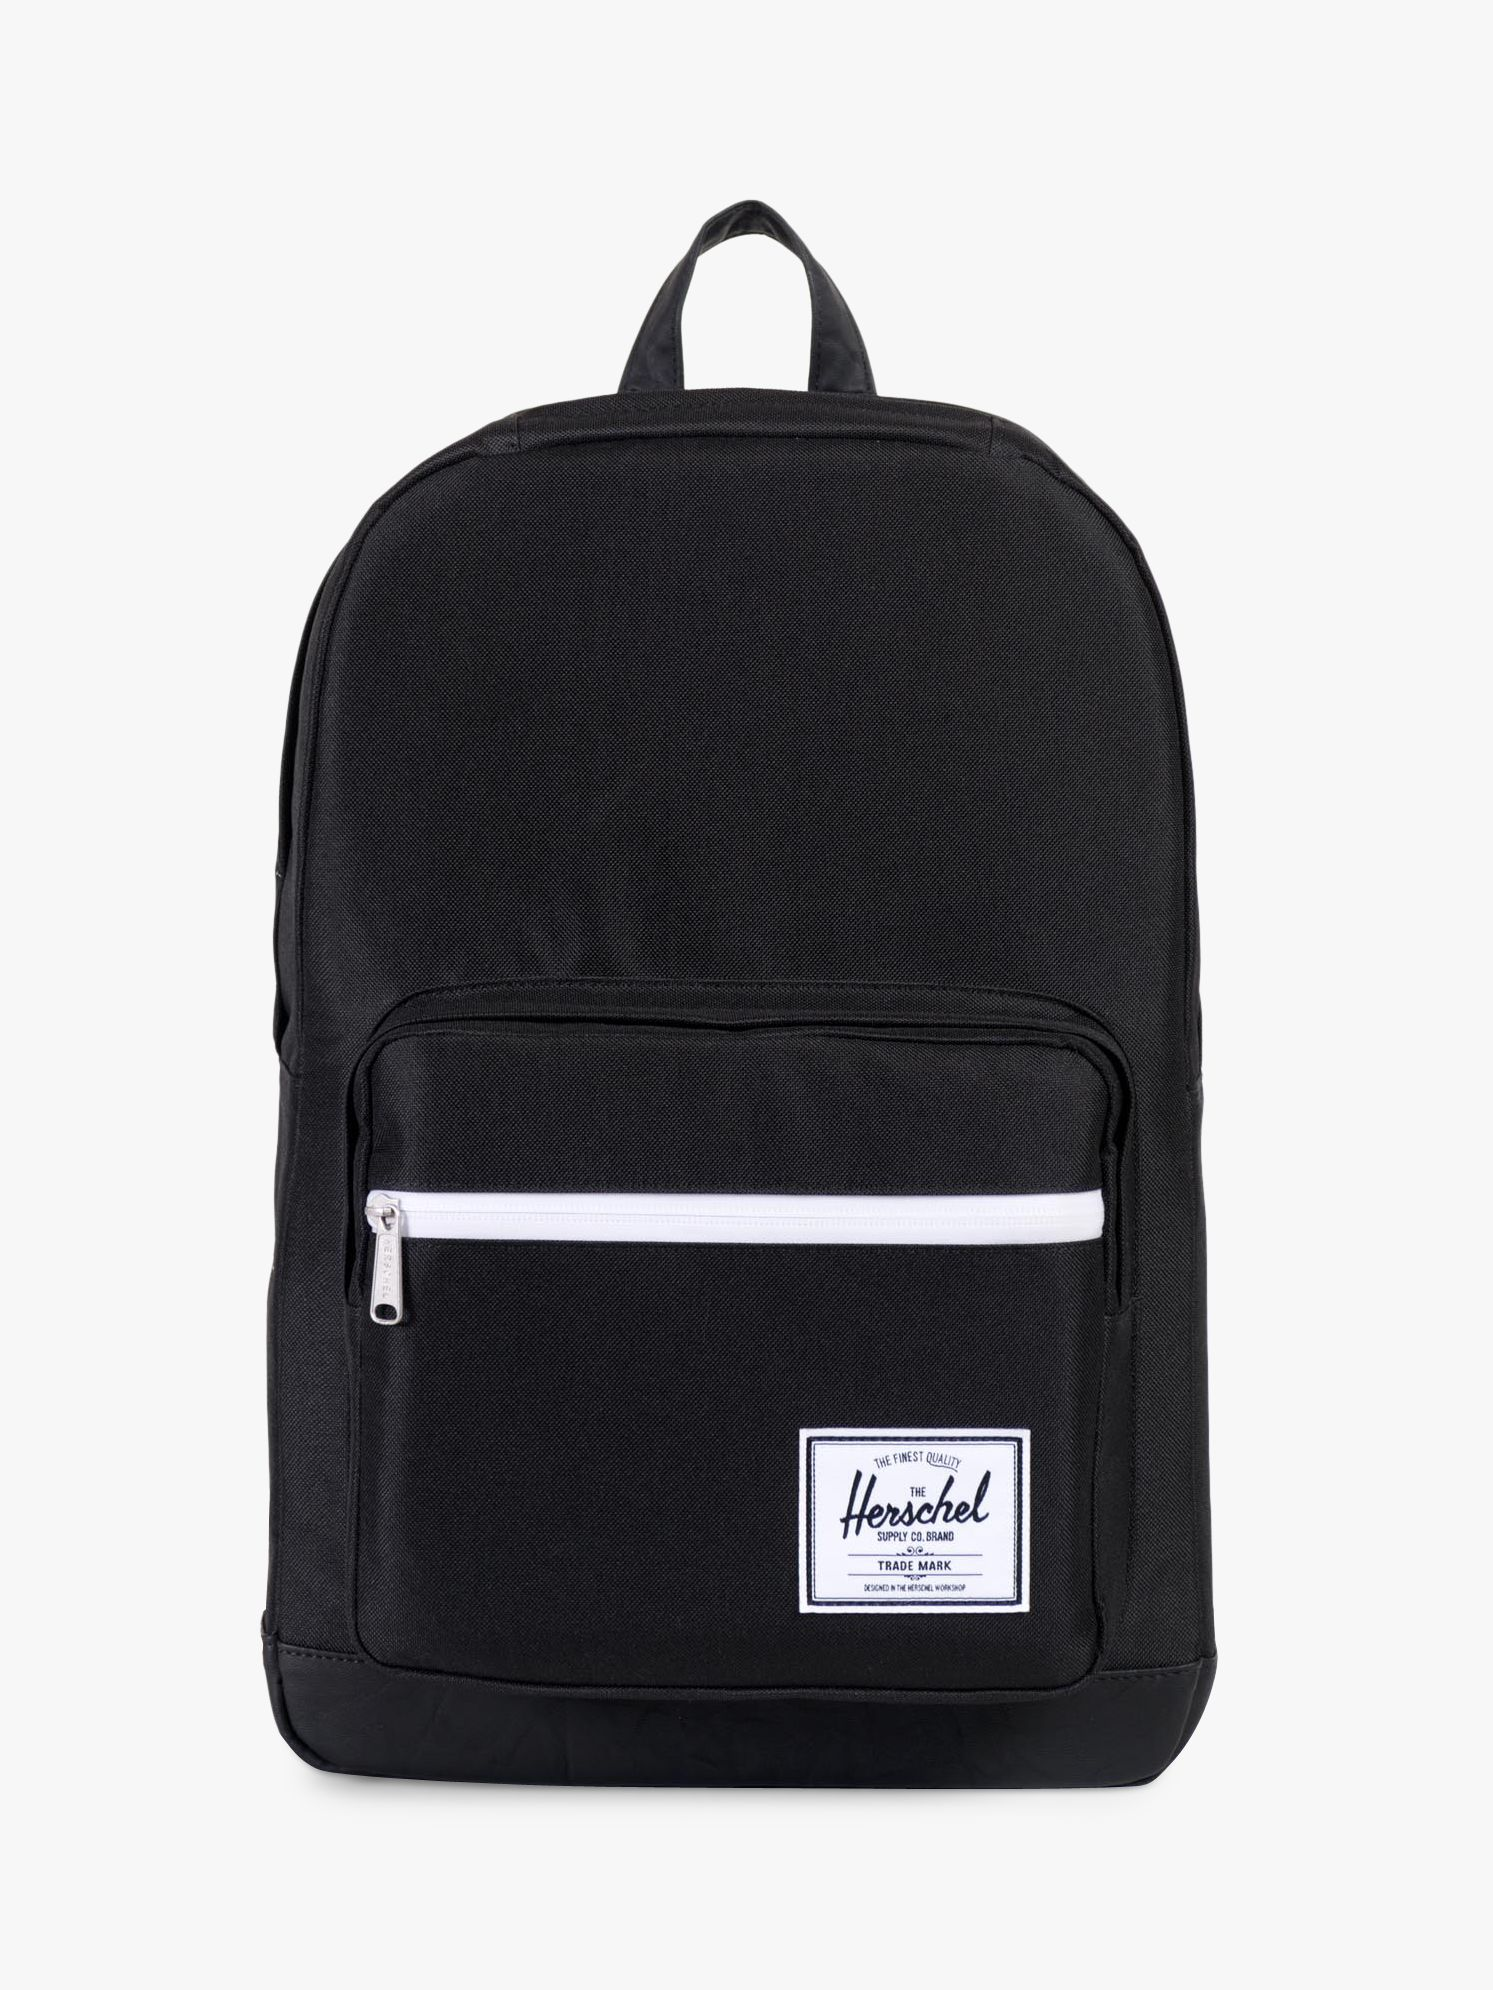 Herschel Supply Co. Herschel Supply Co. Pop Quiz Backpack, Black/Tan Synthetic Leather